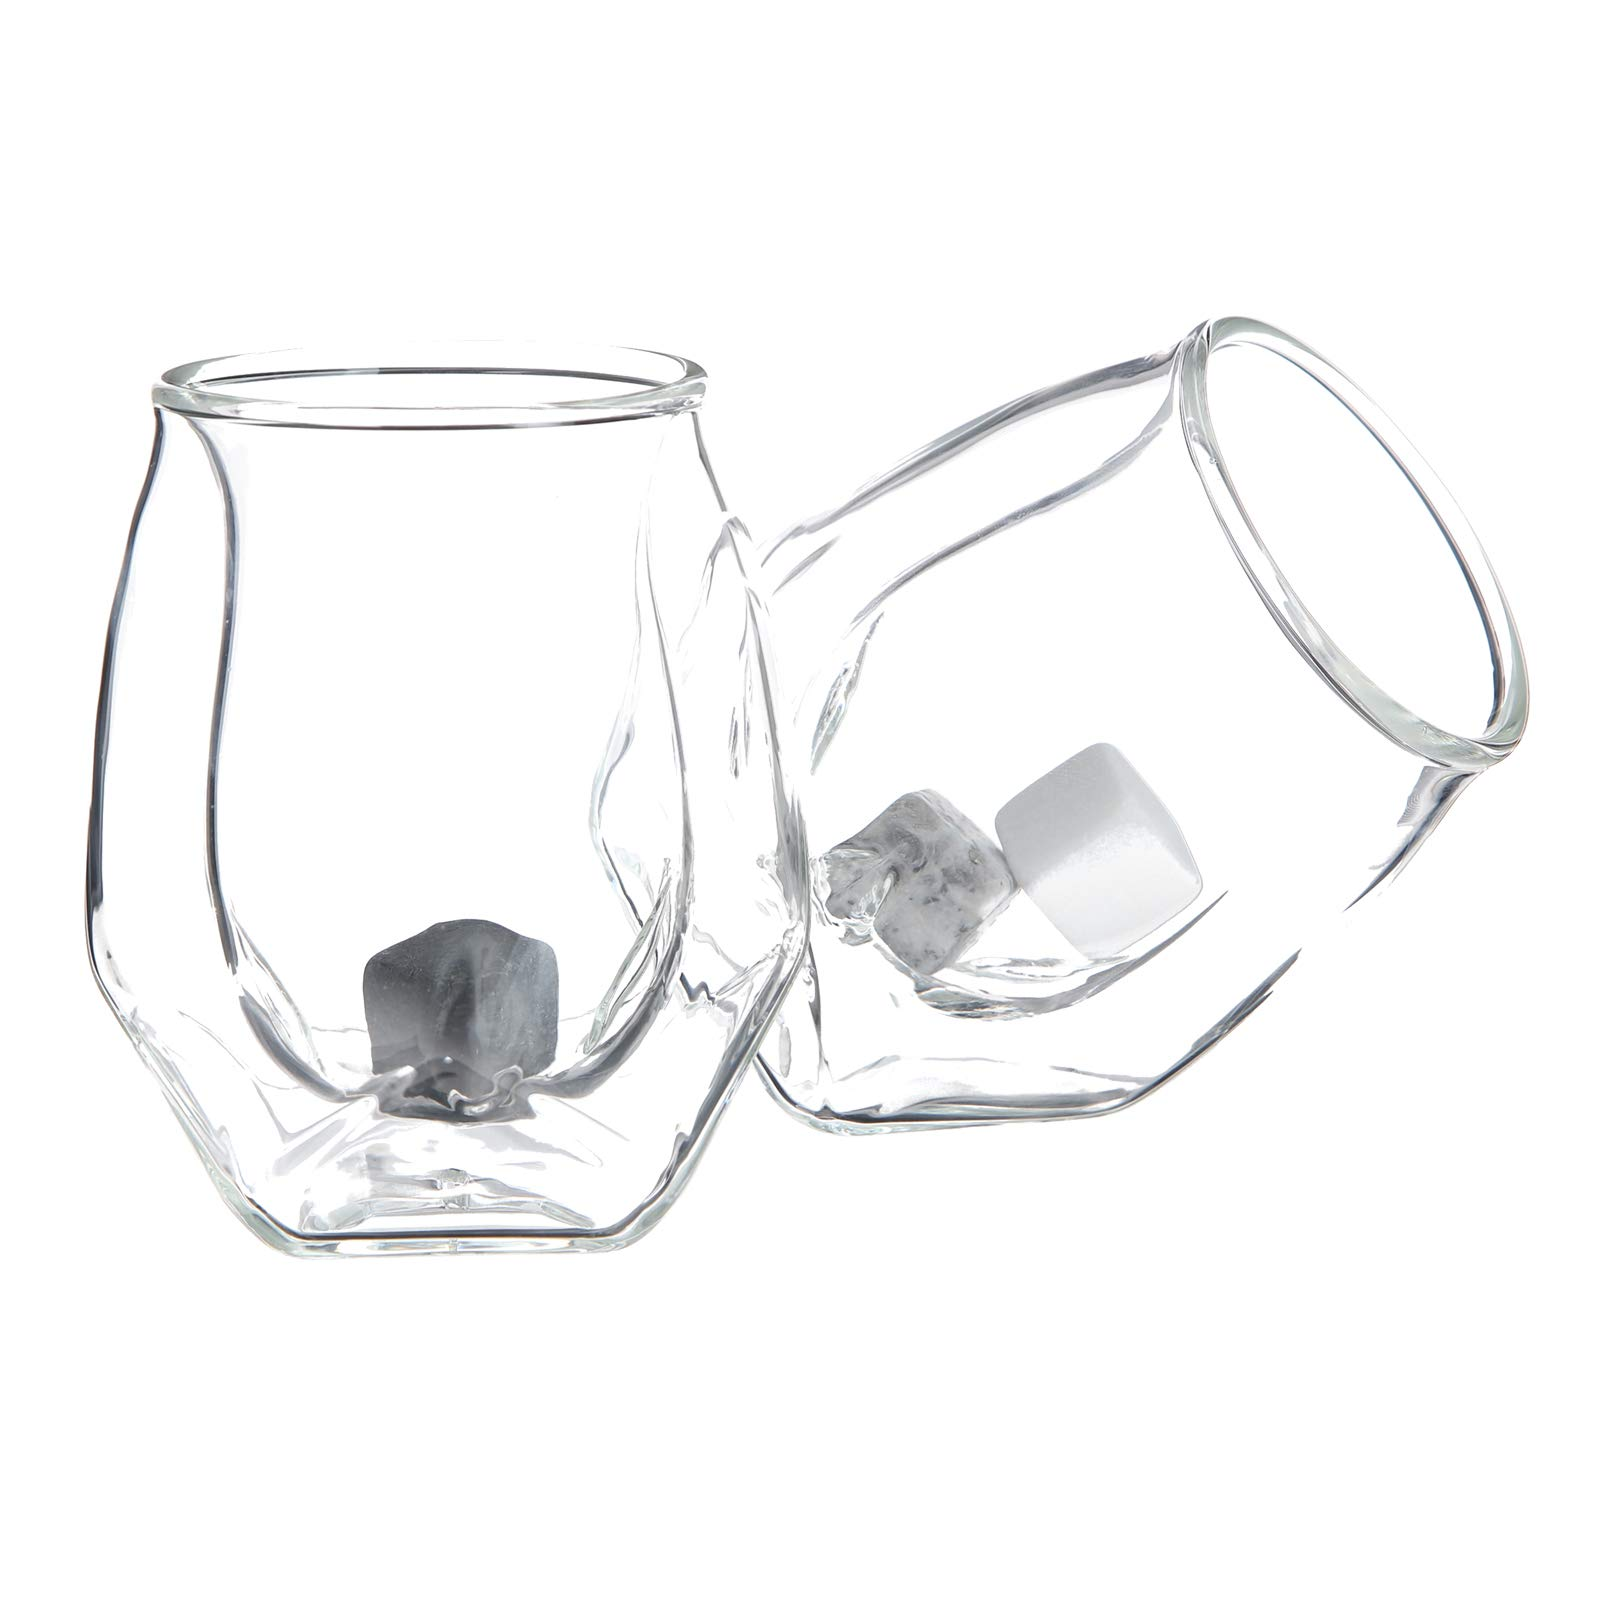 The Tapestry MALLAN Whiskey Glass - Set of 2 in a Sophisticated Gift Box with Refined Whiskey Stones | Modern Mouth-Blown Double Walled Borosilicate Glass | Designed in Iceland